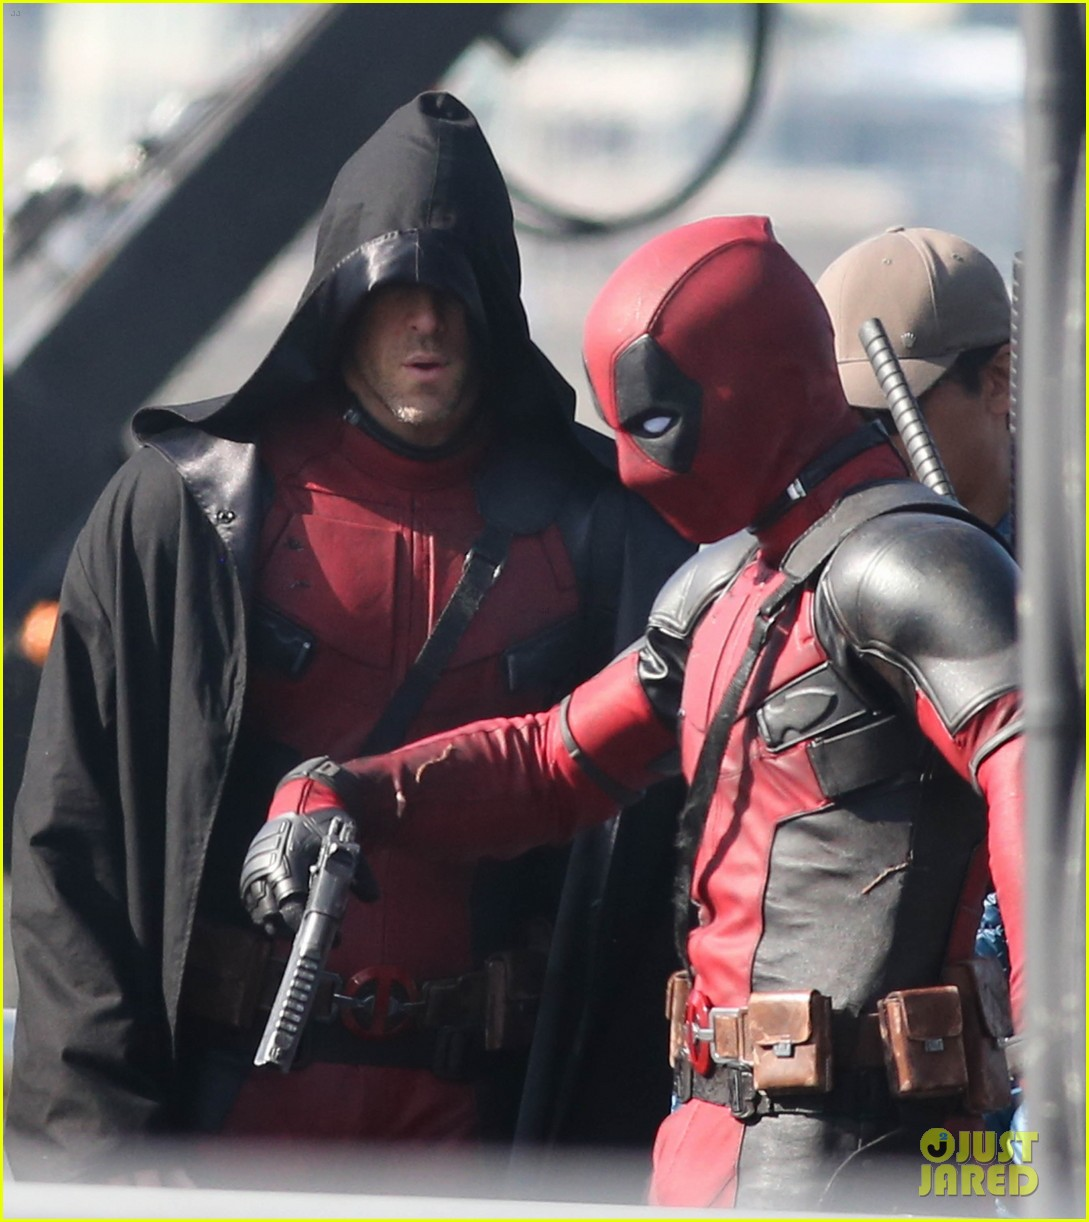 http://cdn02.cdn.justjared.com/wp-content/uploads/2015/04/ryan-ded/ryan-reynolds-pictured-unmasked-deadpool-costume-33.jpg